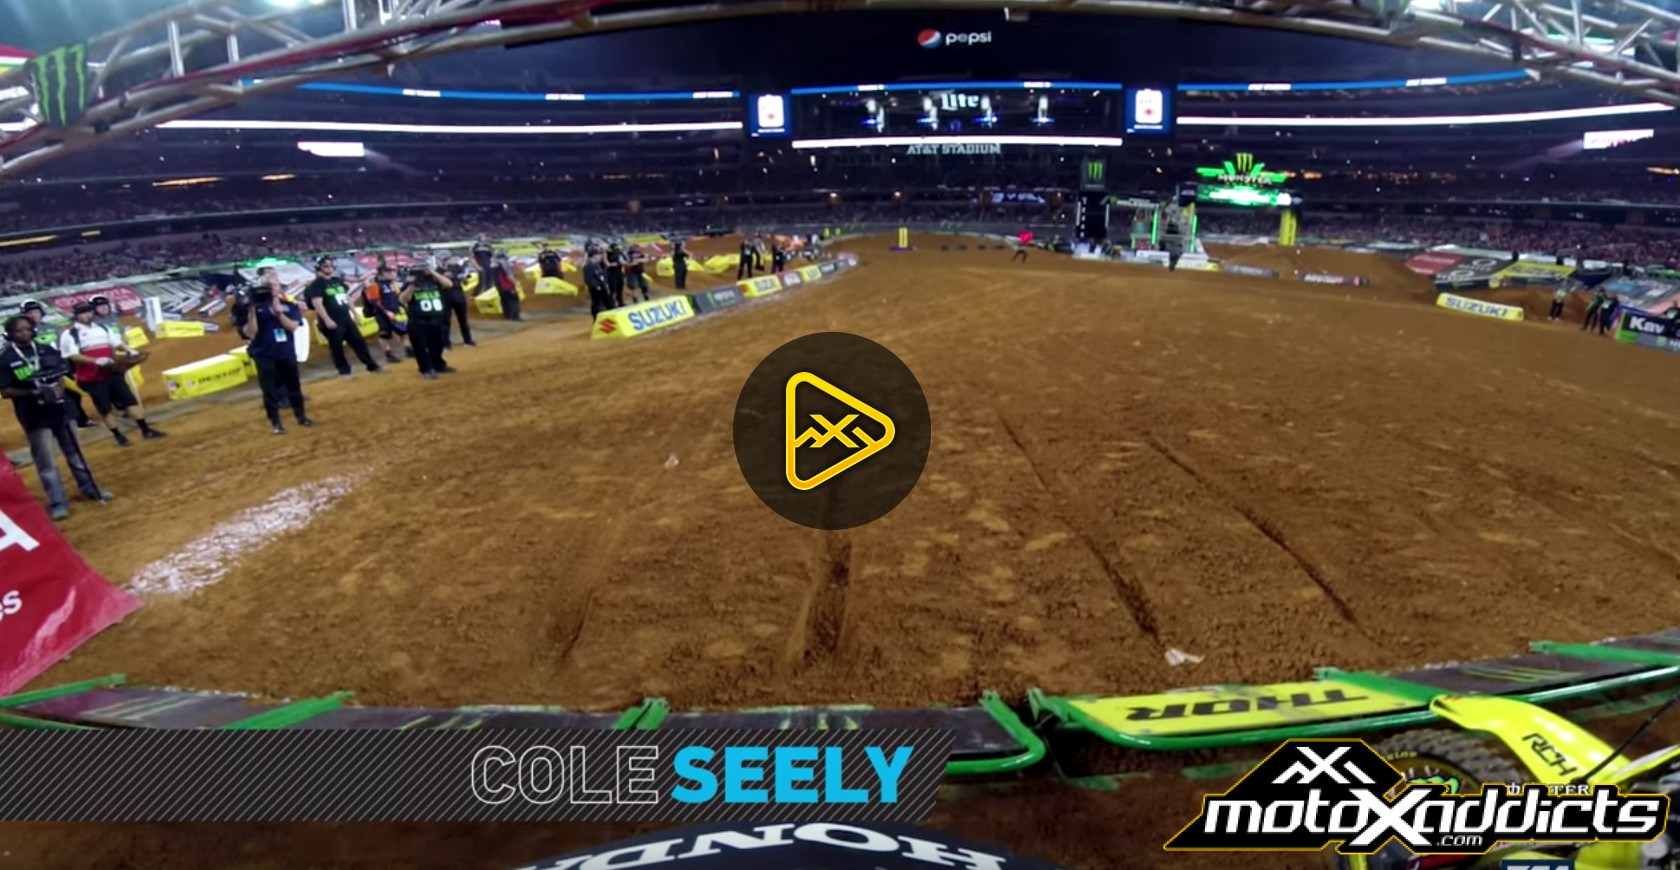 GoPro: Cole Seely at 2017 Arlington SX